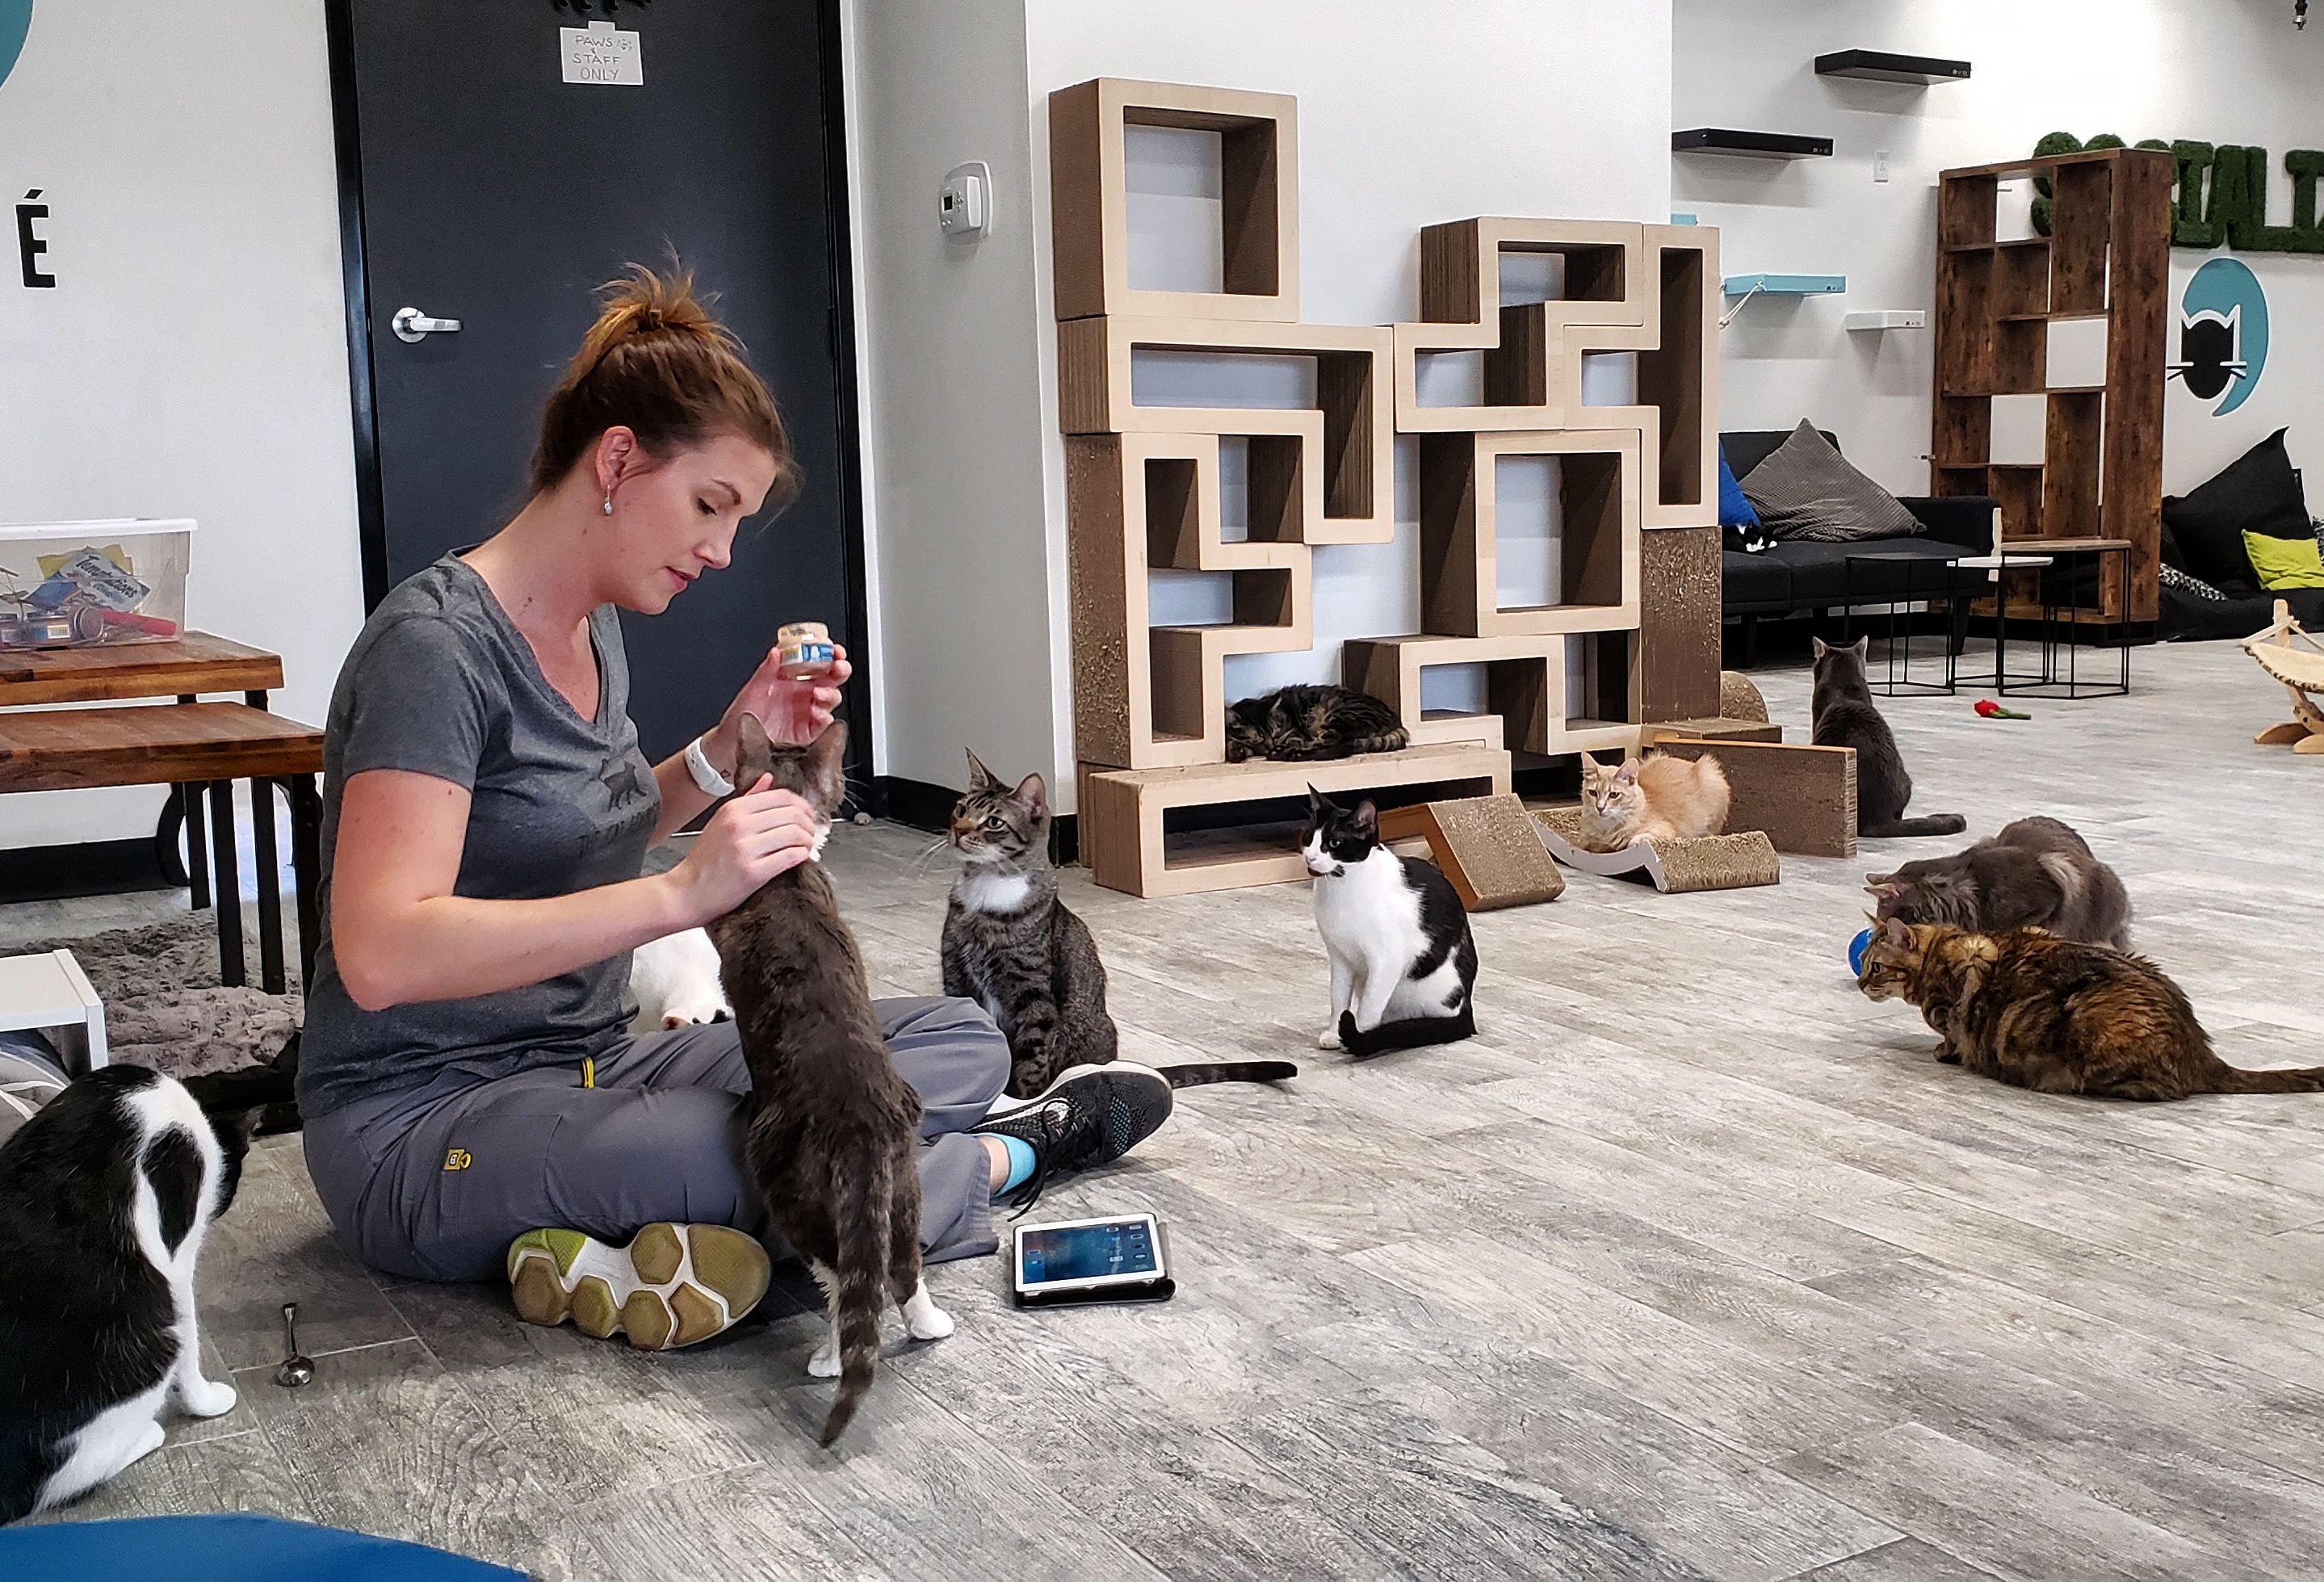 Typical Wednesday at CatCafe Lounge